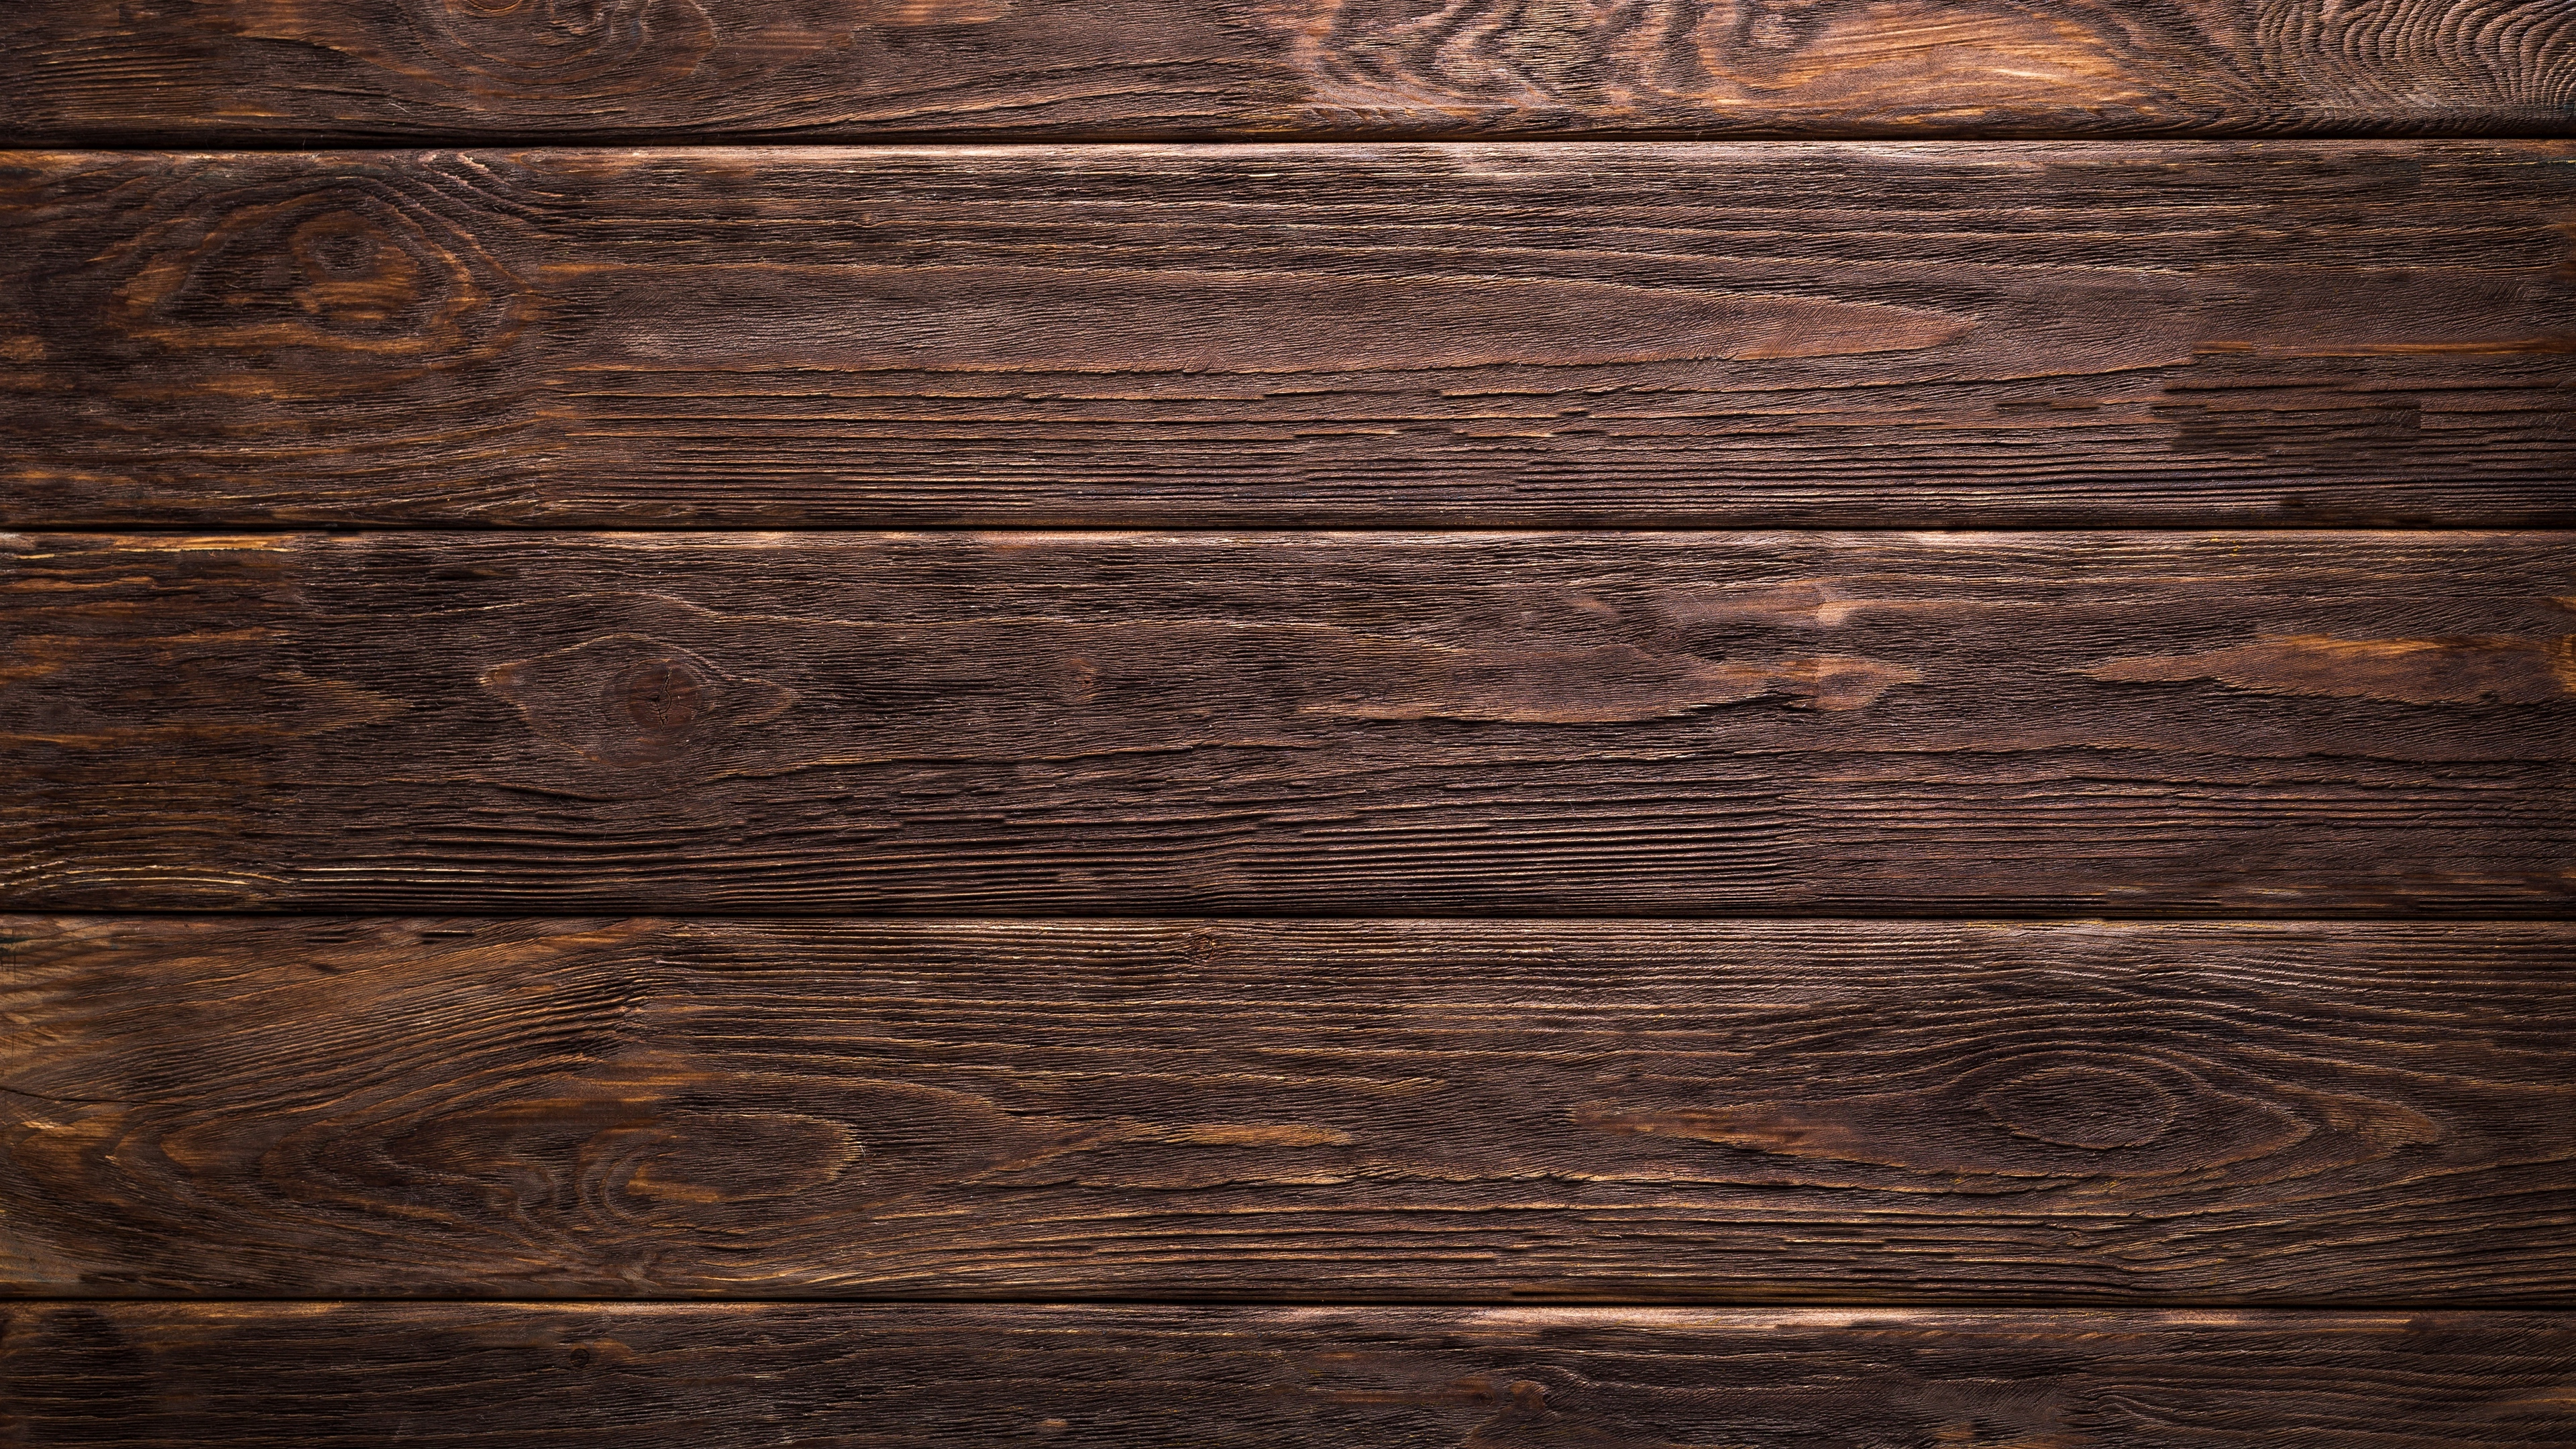 wood surface texture boards 4k 1536097888 - wood, surface, texture, boards 4k - wood, Texture, Surface